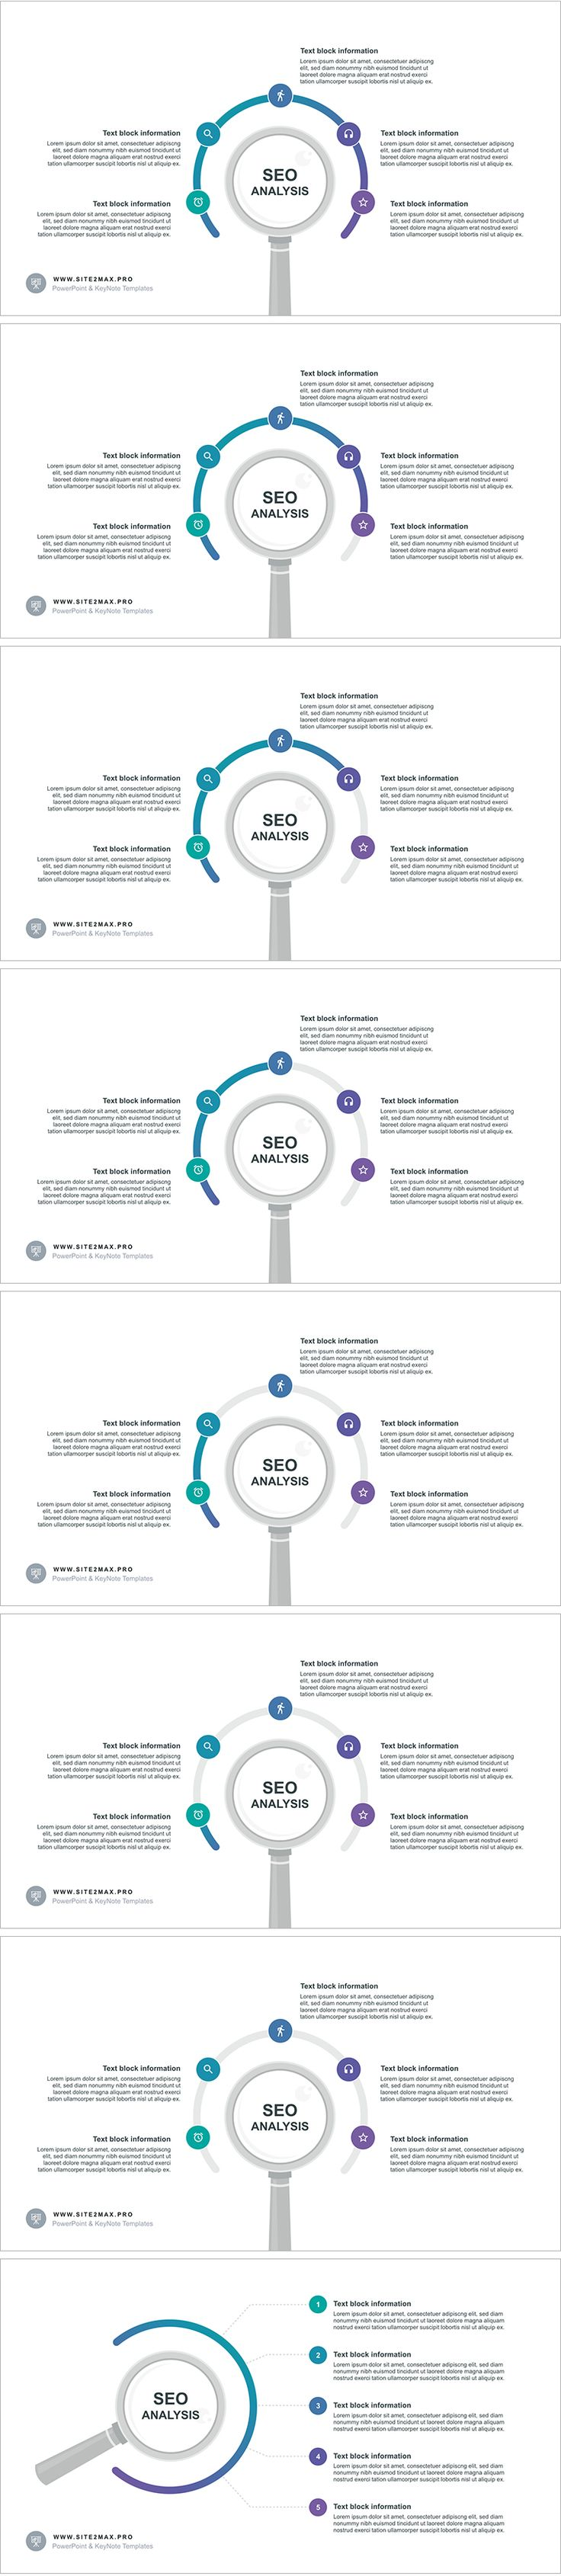 Download: http://site2max.pro/seo-analysis-infographic-keynote/  SEO analysis infographic Keynote #seo #keynote #key #analysis #infographic #marketing